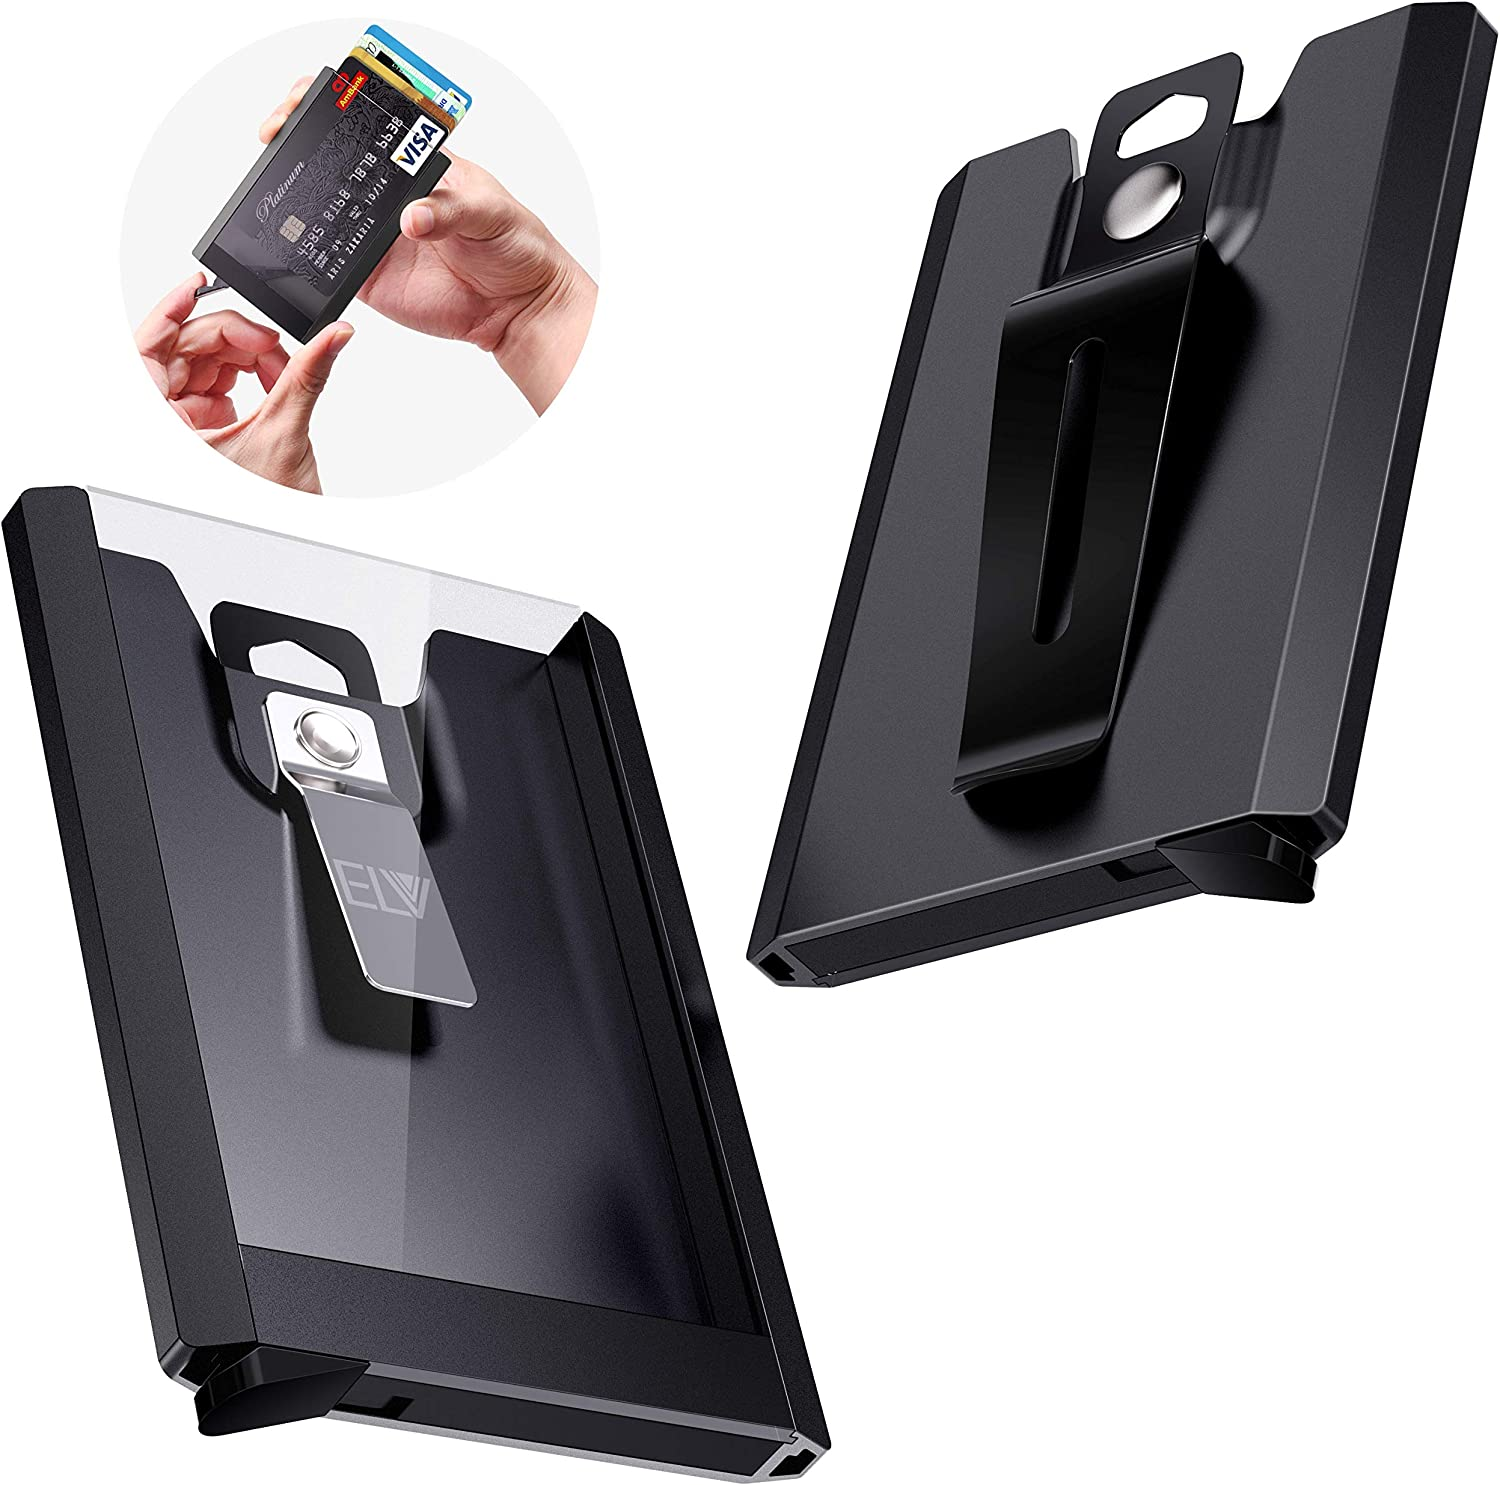 Metal Clip for Offices ID Holds 1-4 Cards Driver Licence Aluminium ID Badge Card Holder Heavy Duty with Quick Release Button School ID ELV Badge Holder Wallet Wallet